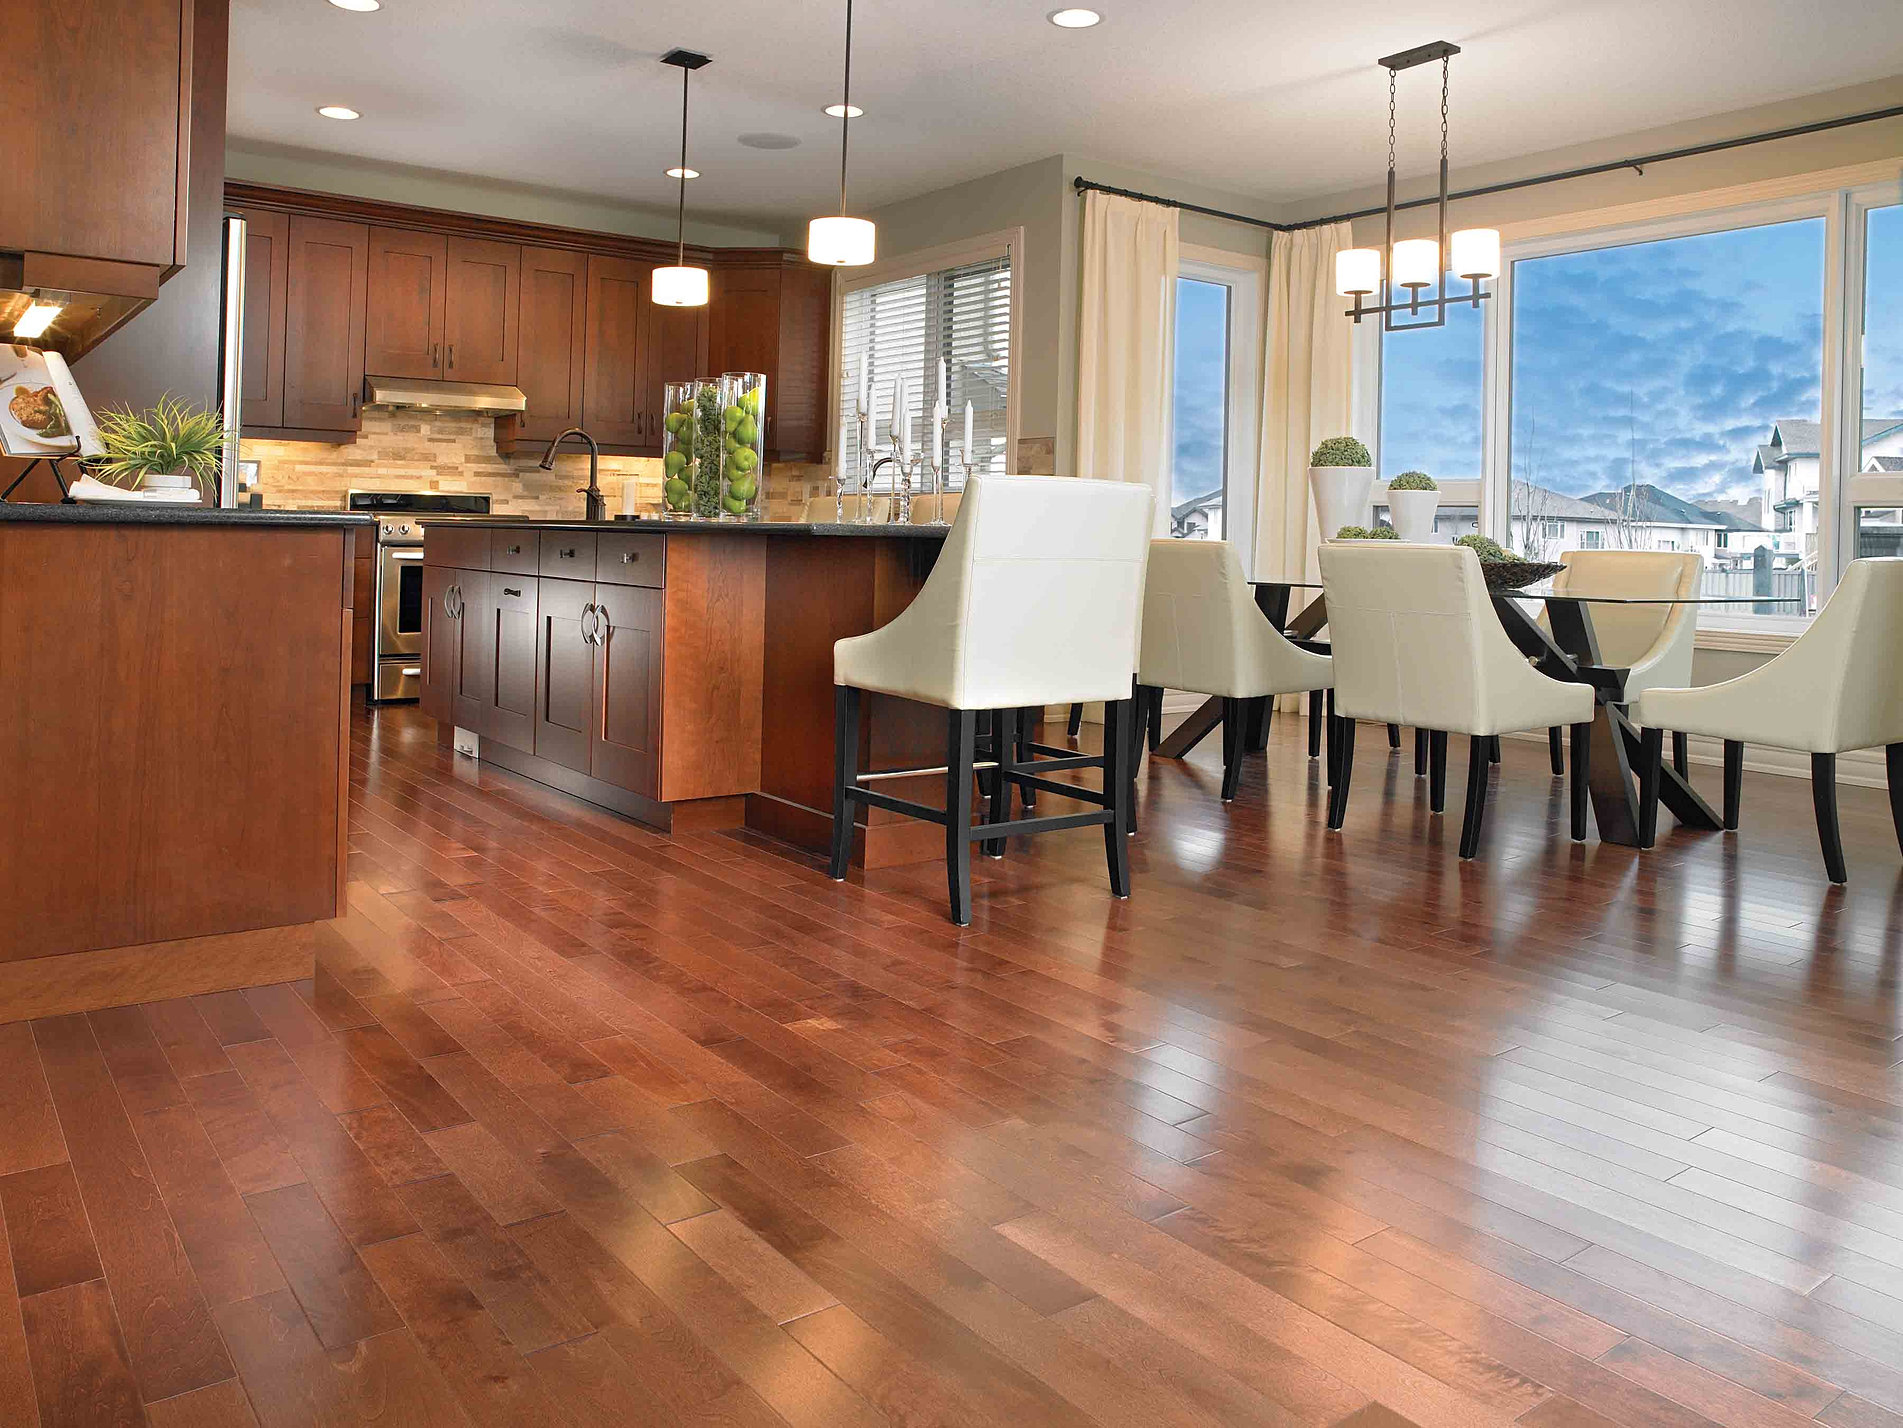 Water Resistant Laminate Flooring Kitchen Calvetta Brothers Floor Show 216 220 6473